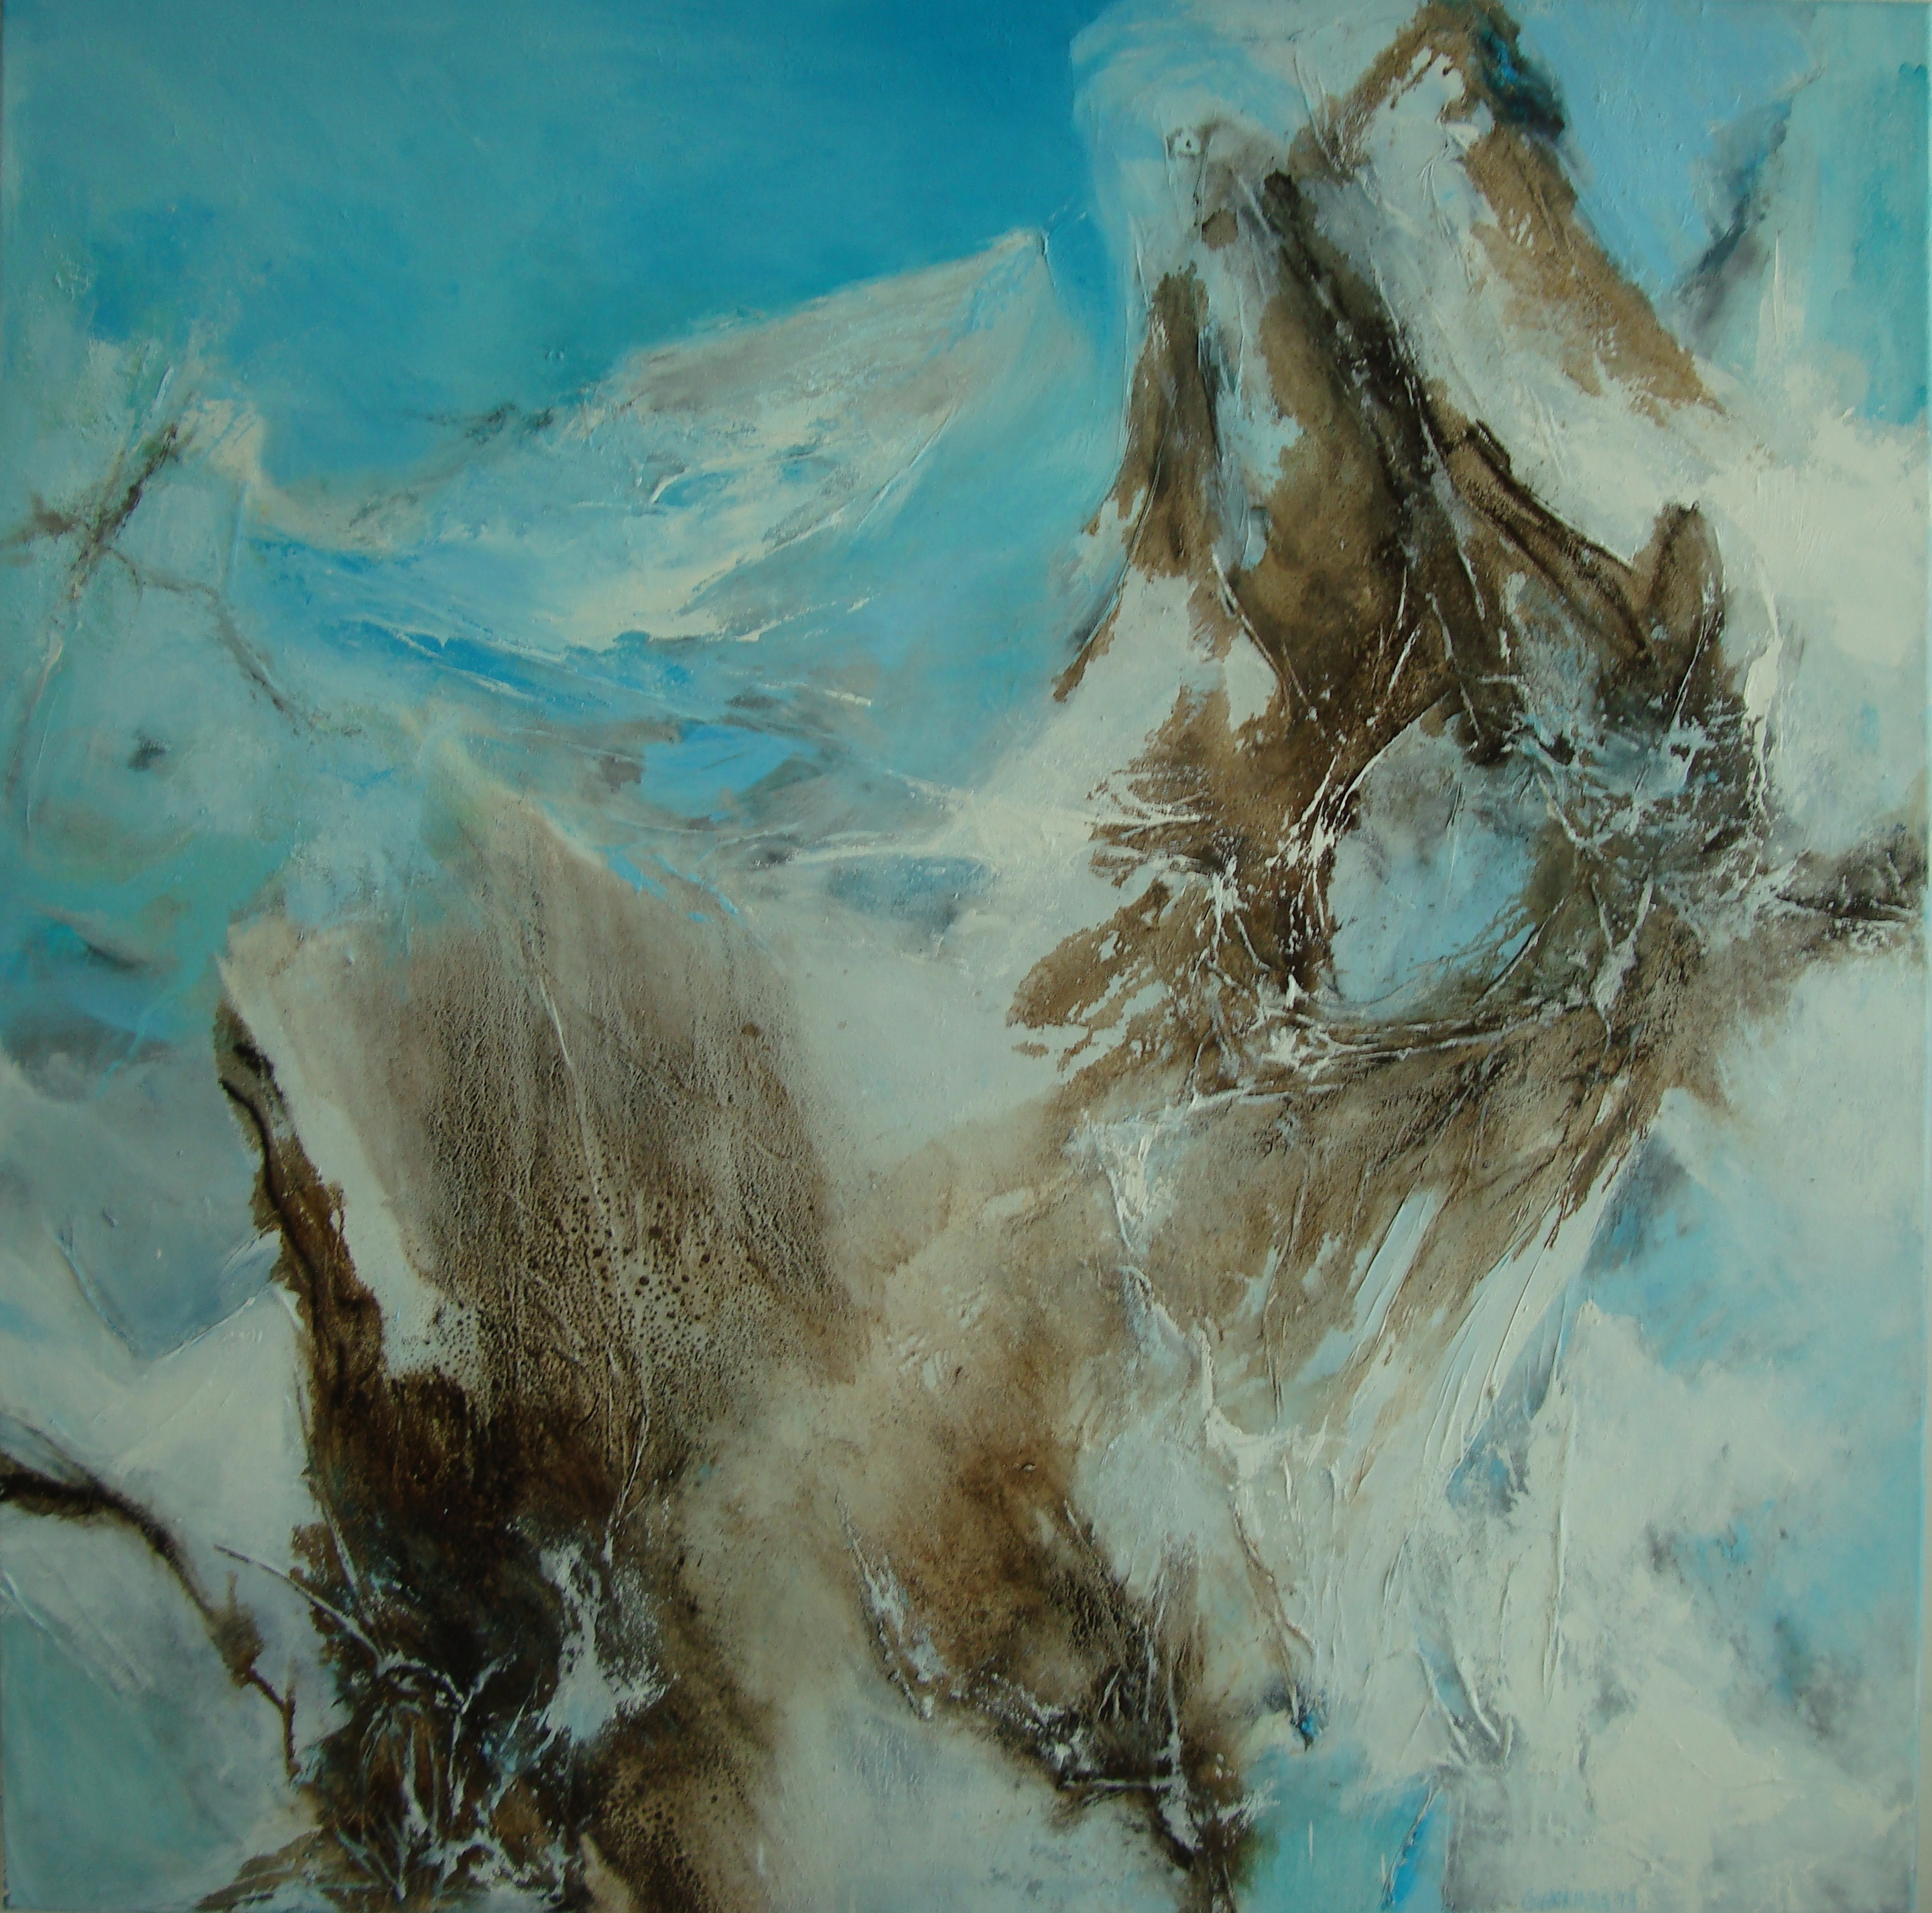 Aska og ísbráð- Ash and melting ice, 150 x 150 cm.